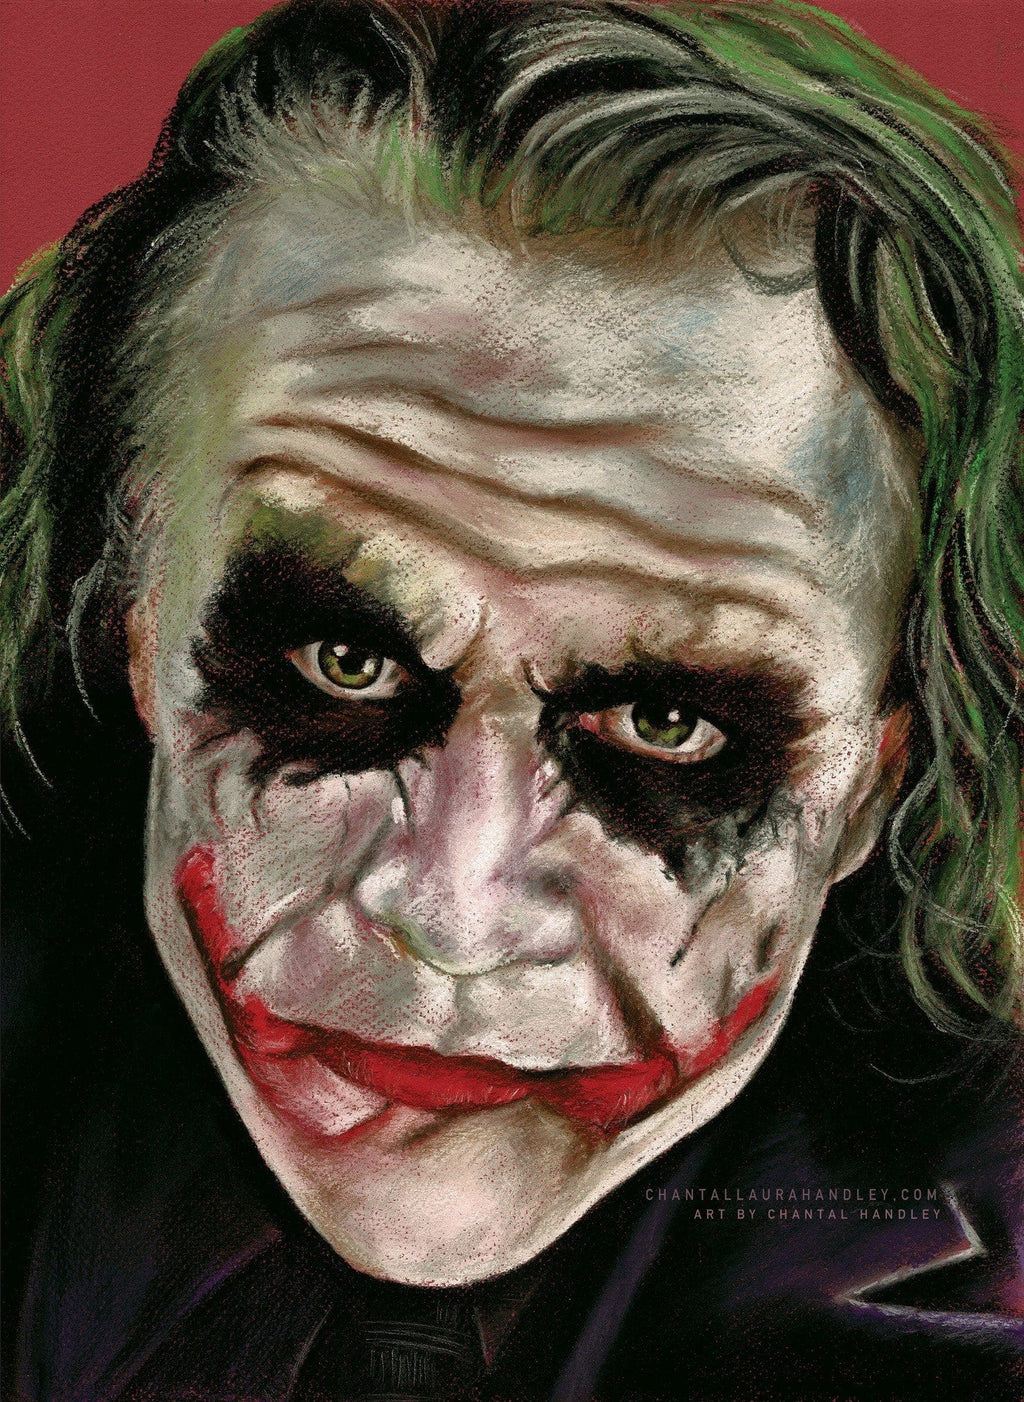 JOKER - DARK KNIGHT - Heath Ledger - Art Print ART PRINT ChantalLauraHandley